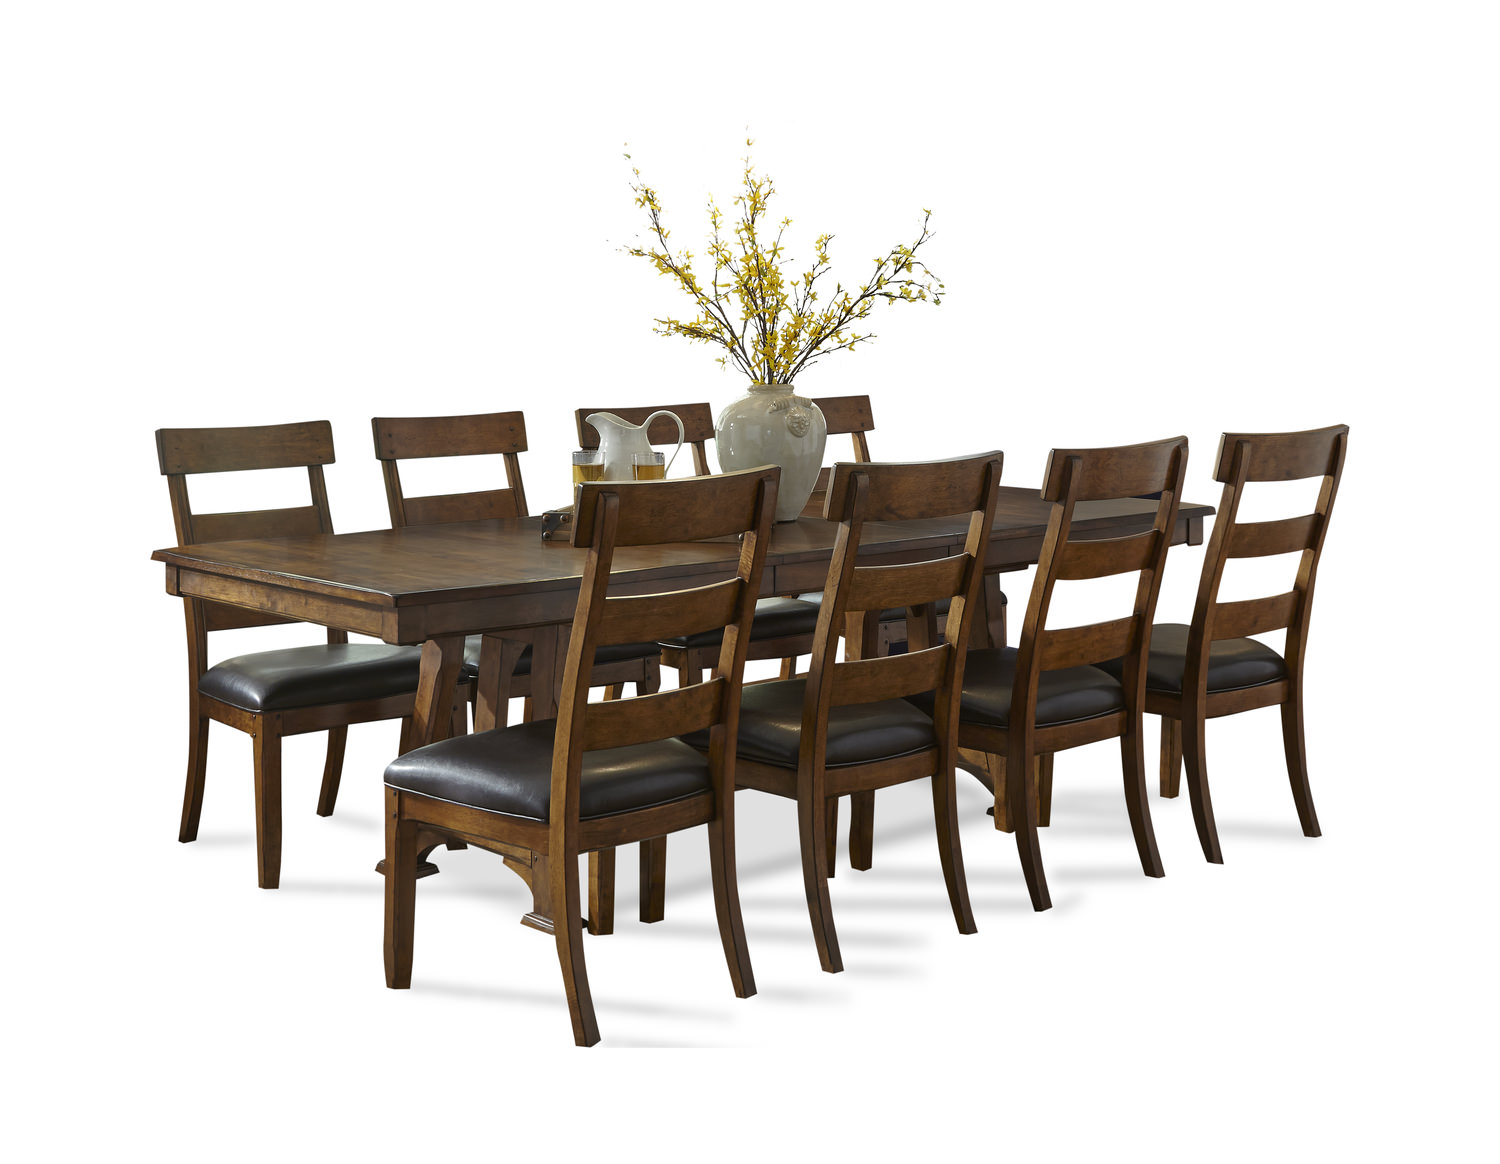 Ozark Table With 4 Side Chairs ...